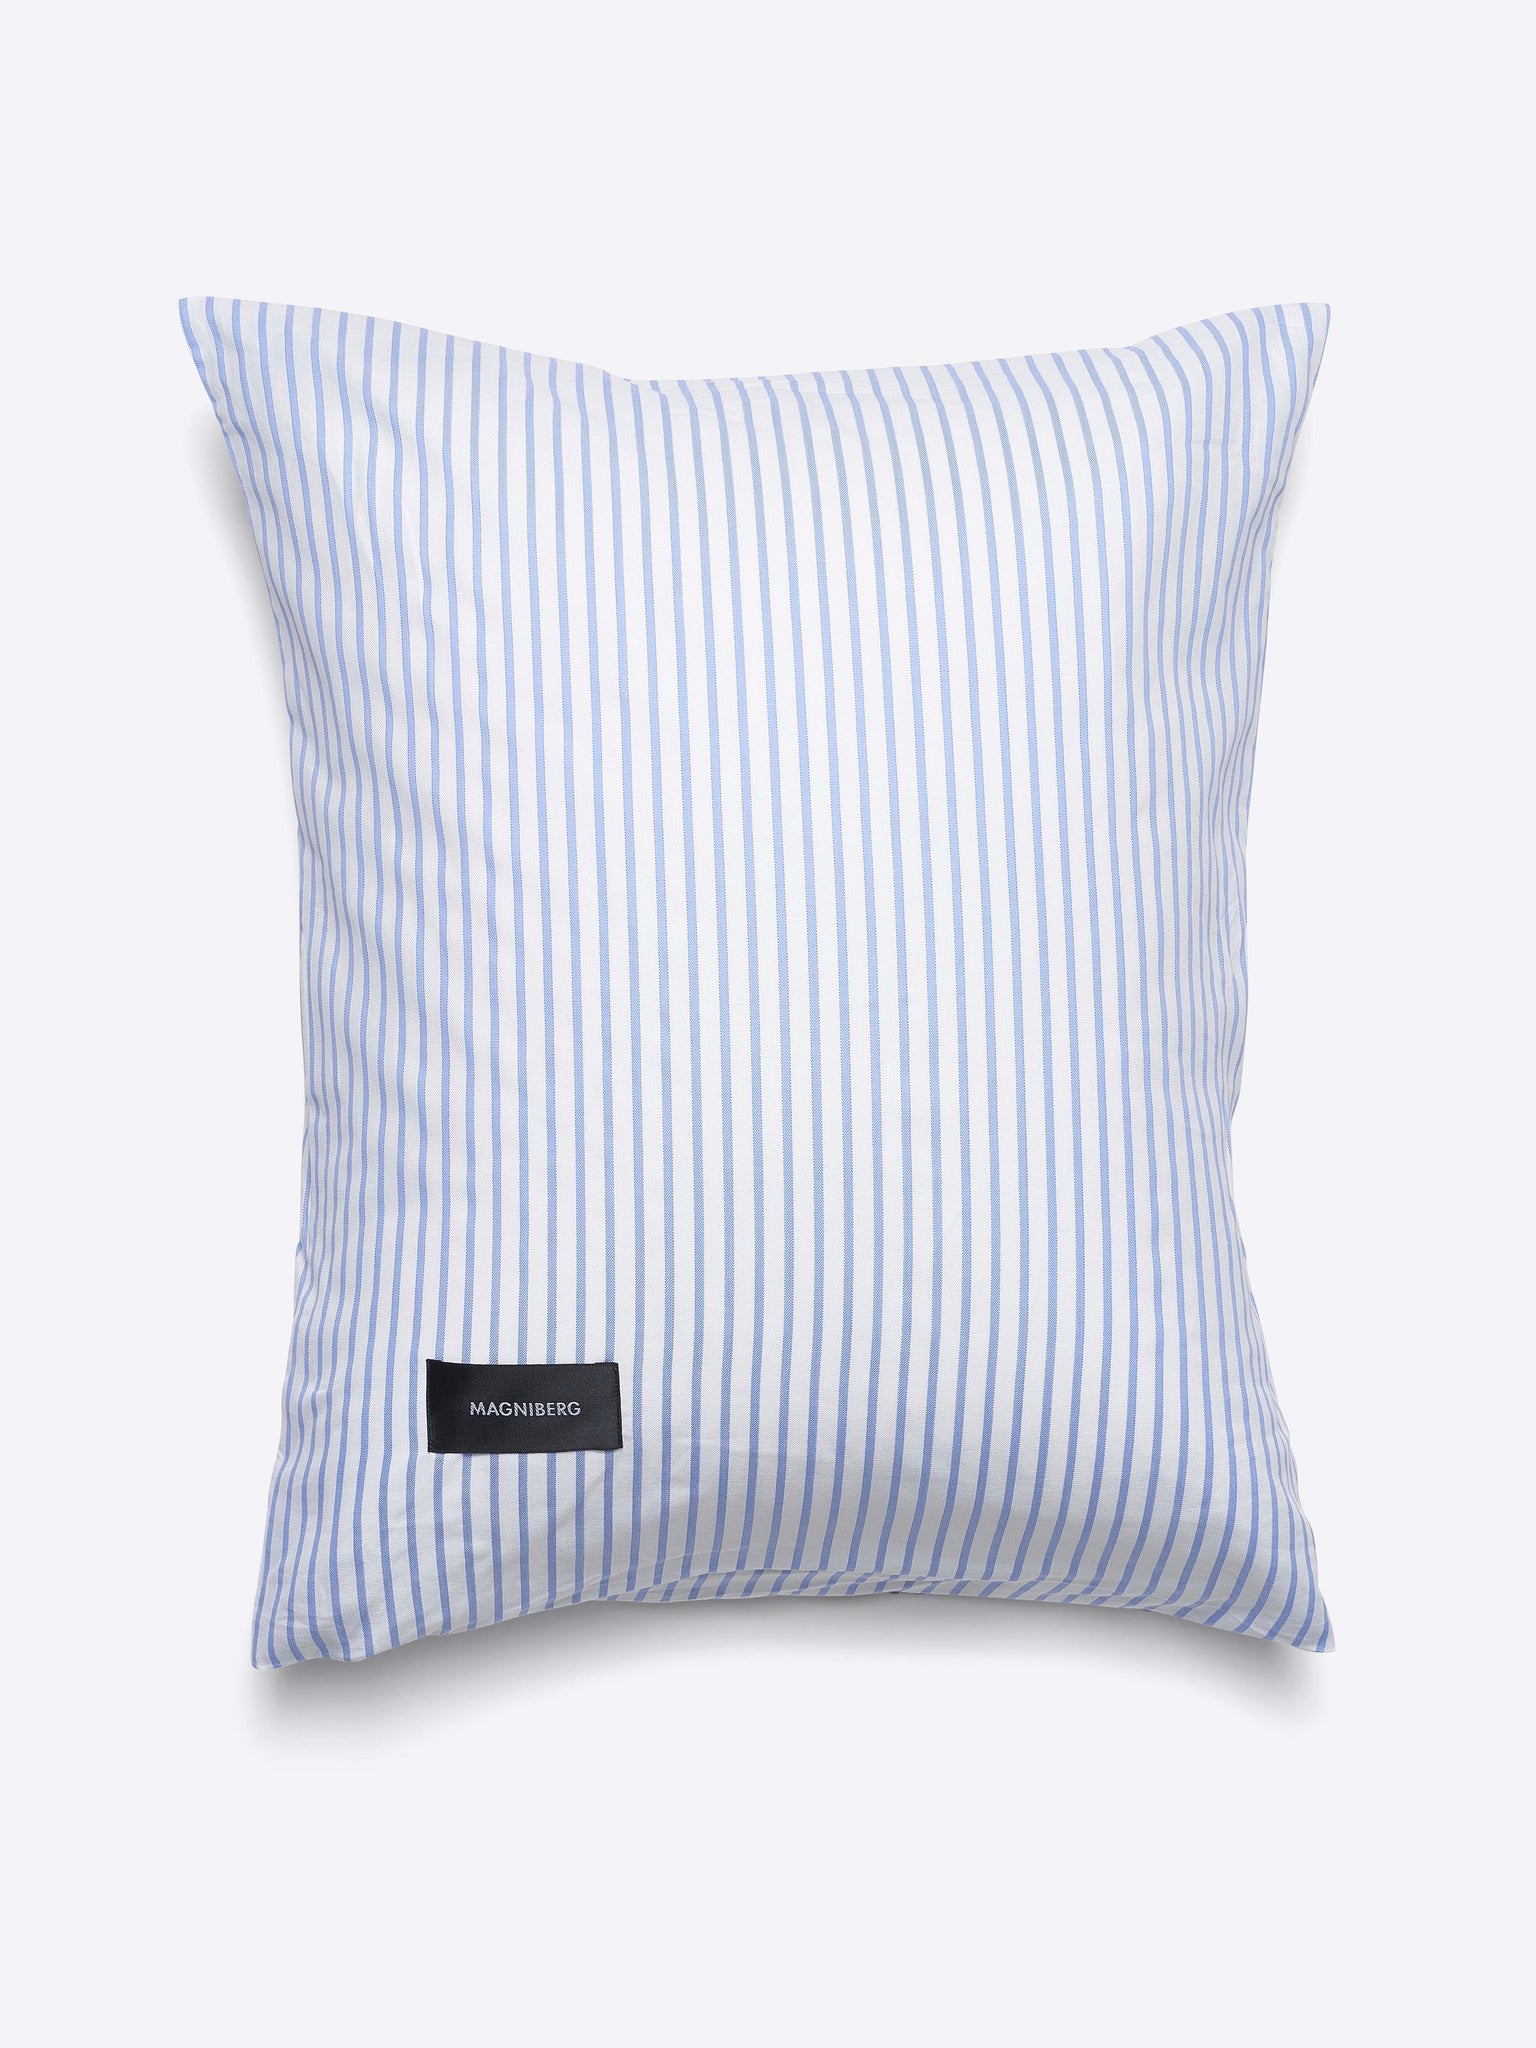 Magniberg Wall Street Oxford Pillow Case Stripe White